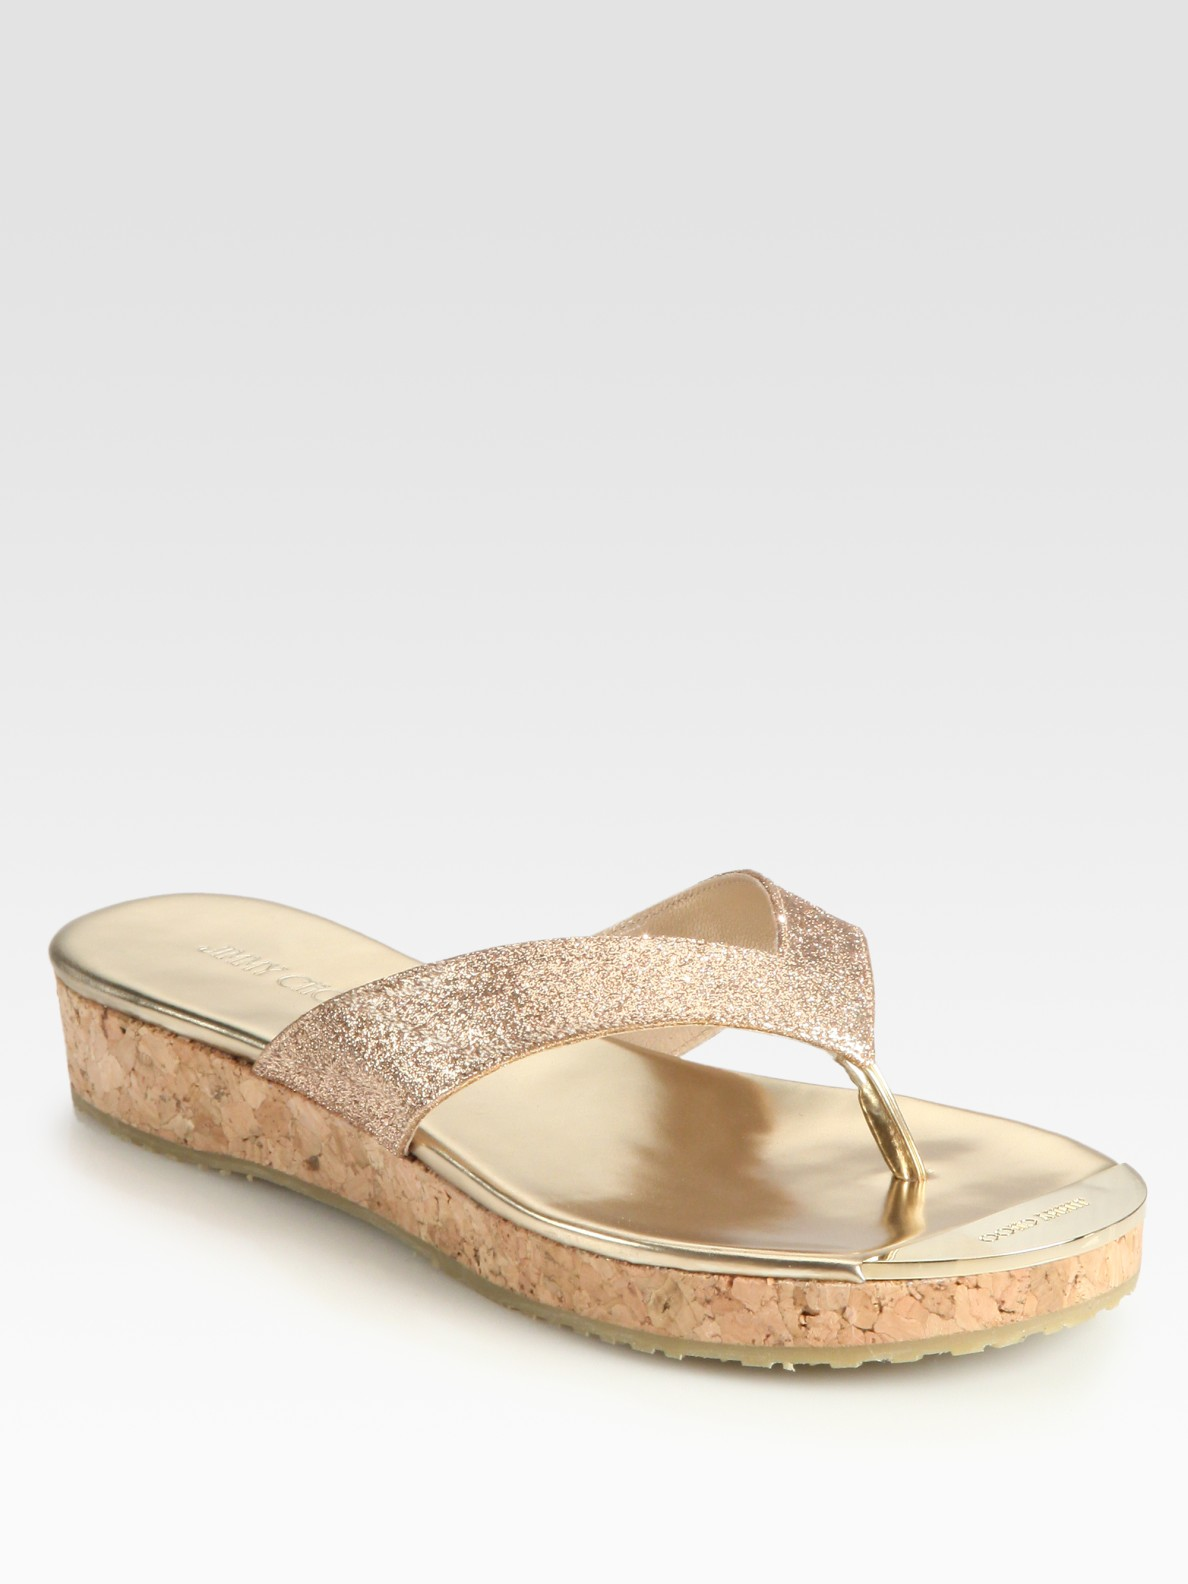 Lyst Jimmy Choo Pence Glitter Cork Wedge Sandals In Natural